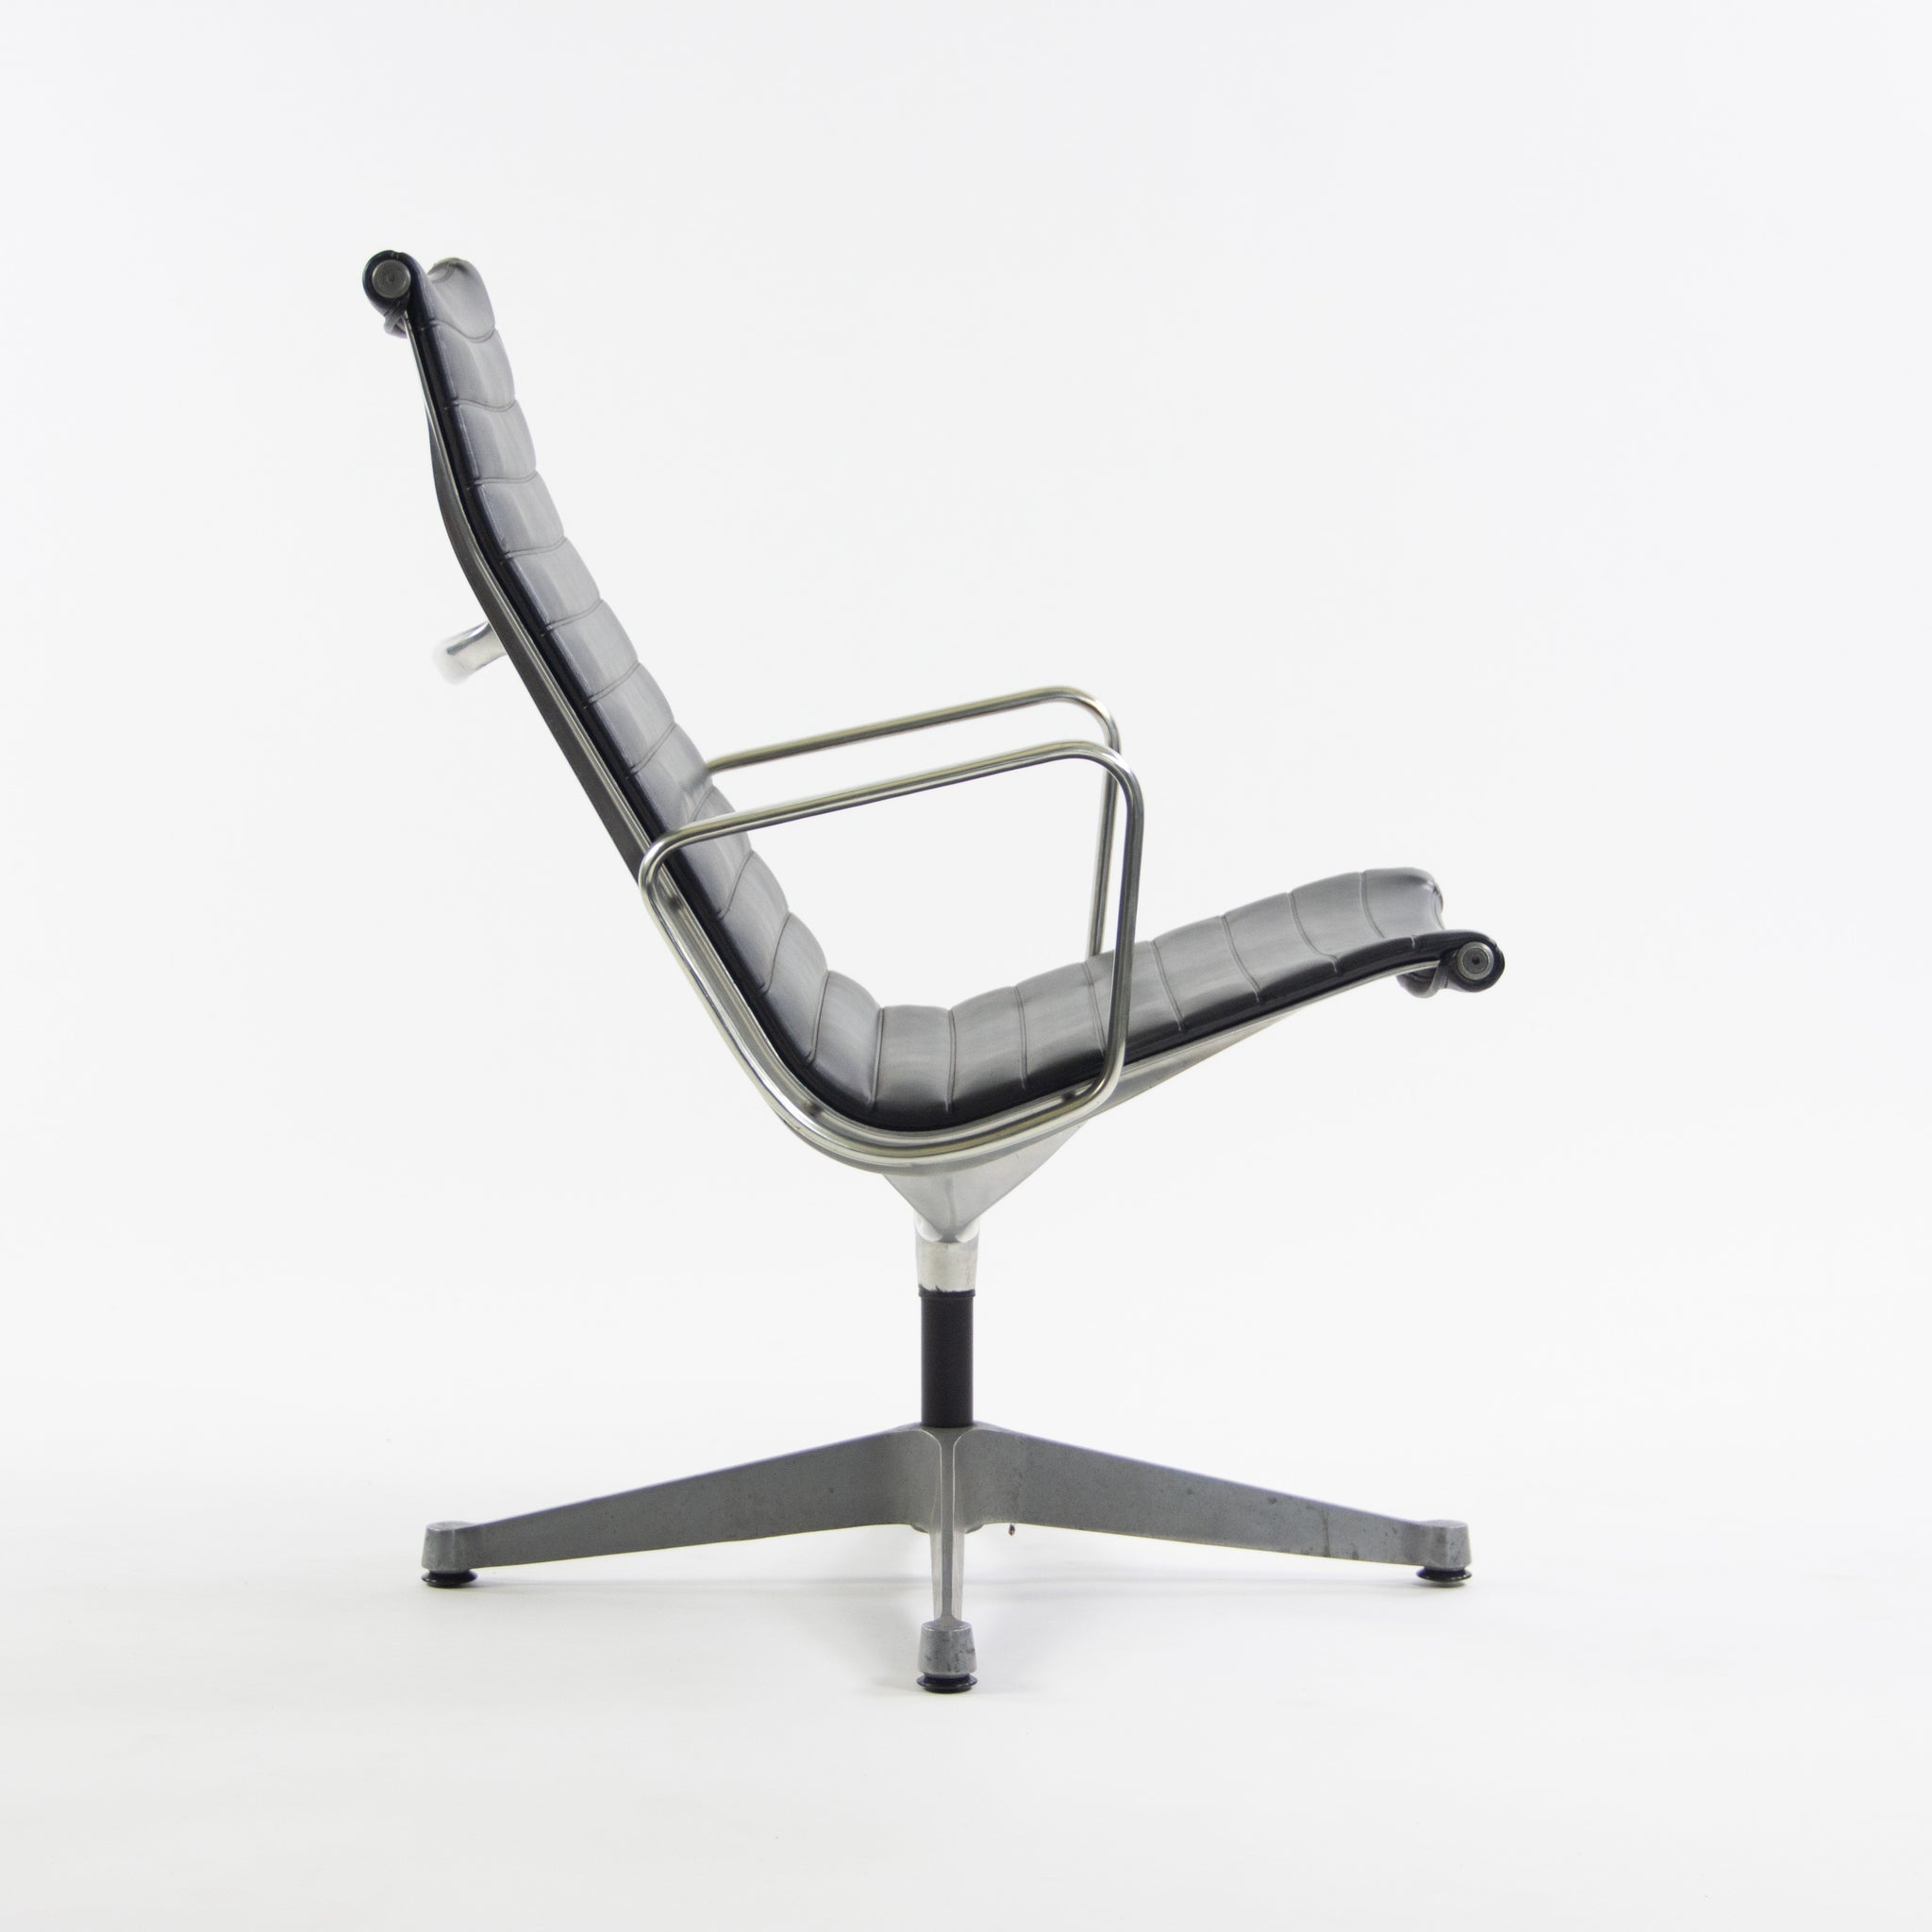 Eames Herman Miller Museum Quality Aluminum Group Lounge Chair Black Upholstery